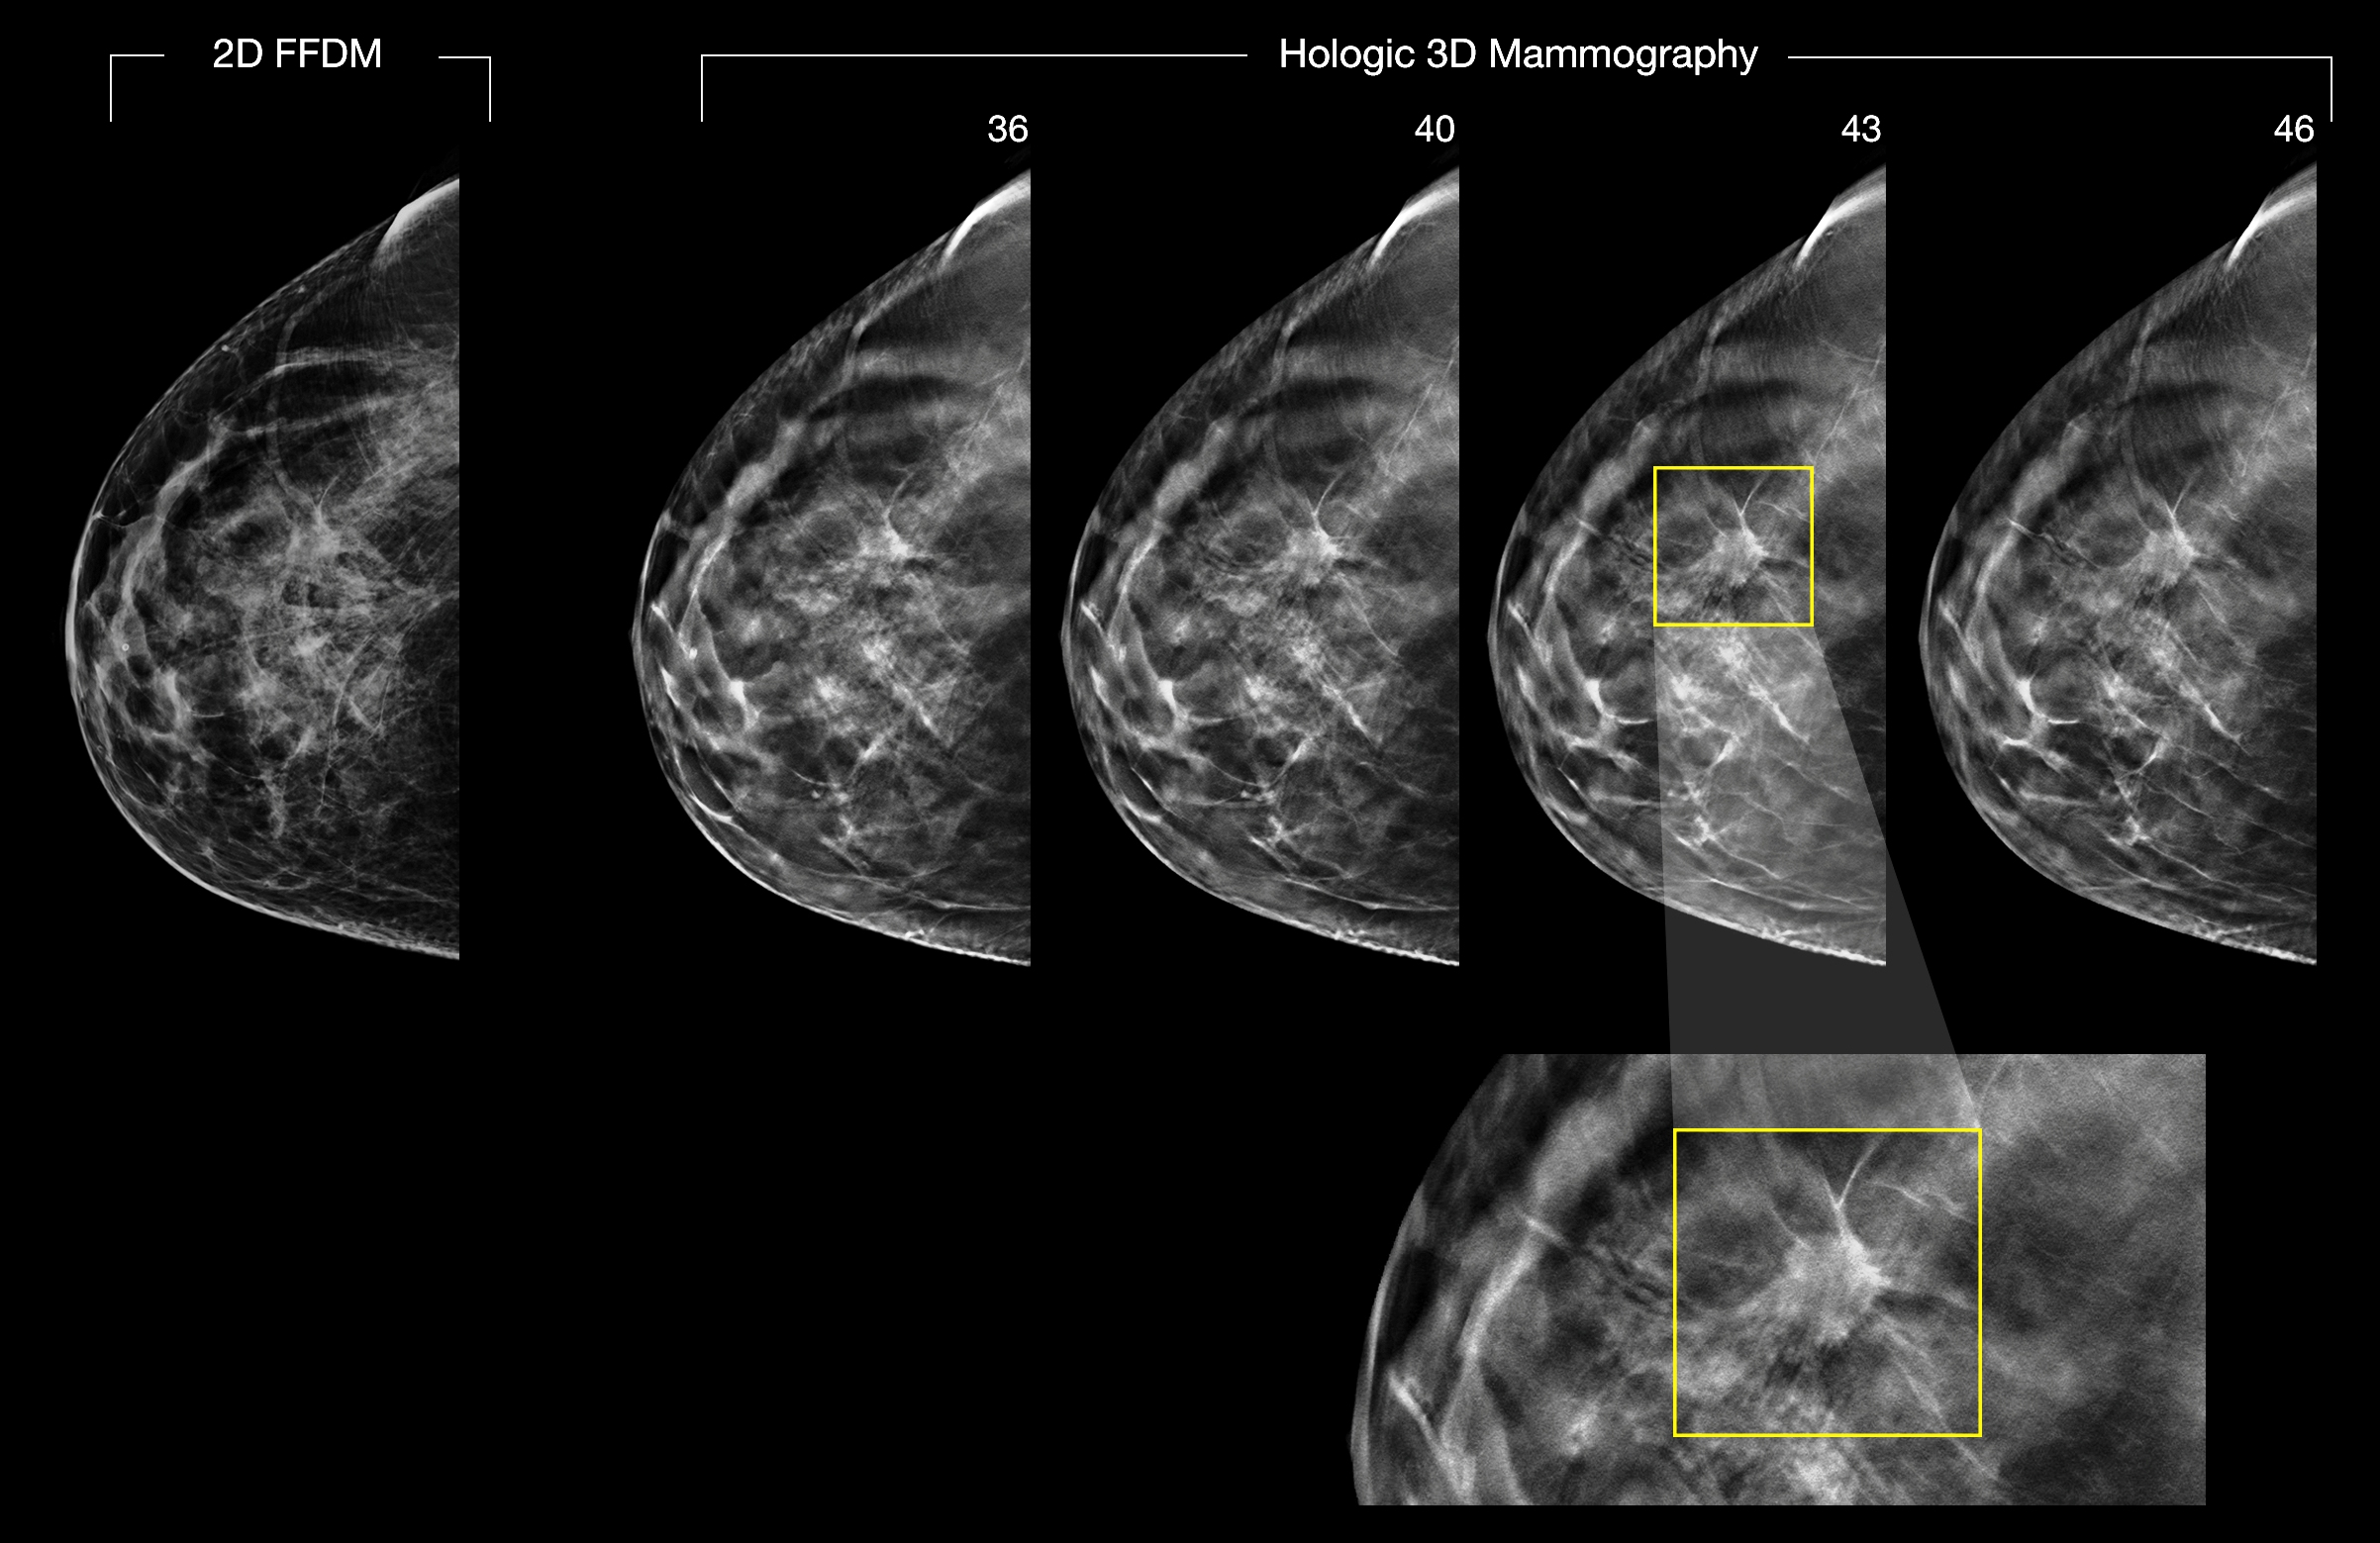 2-D and 3-D digital breast images